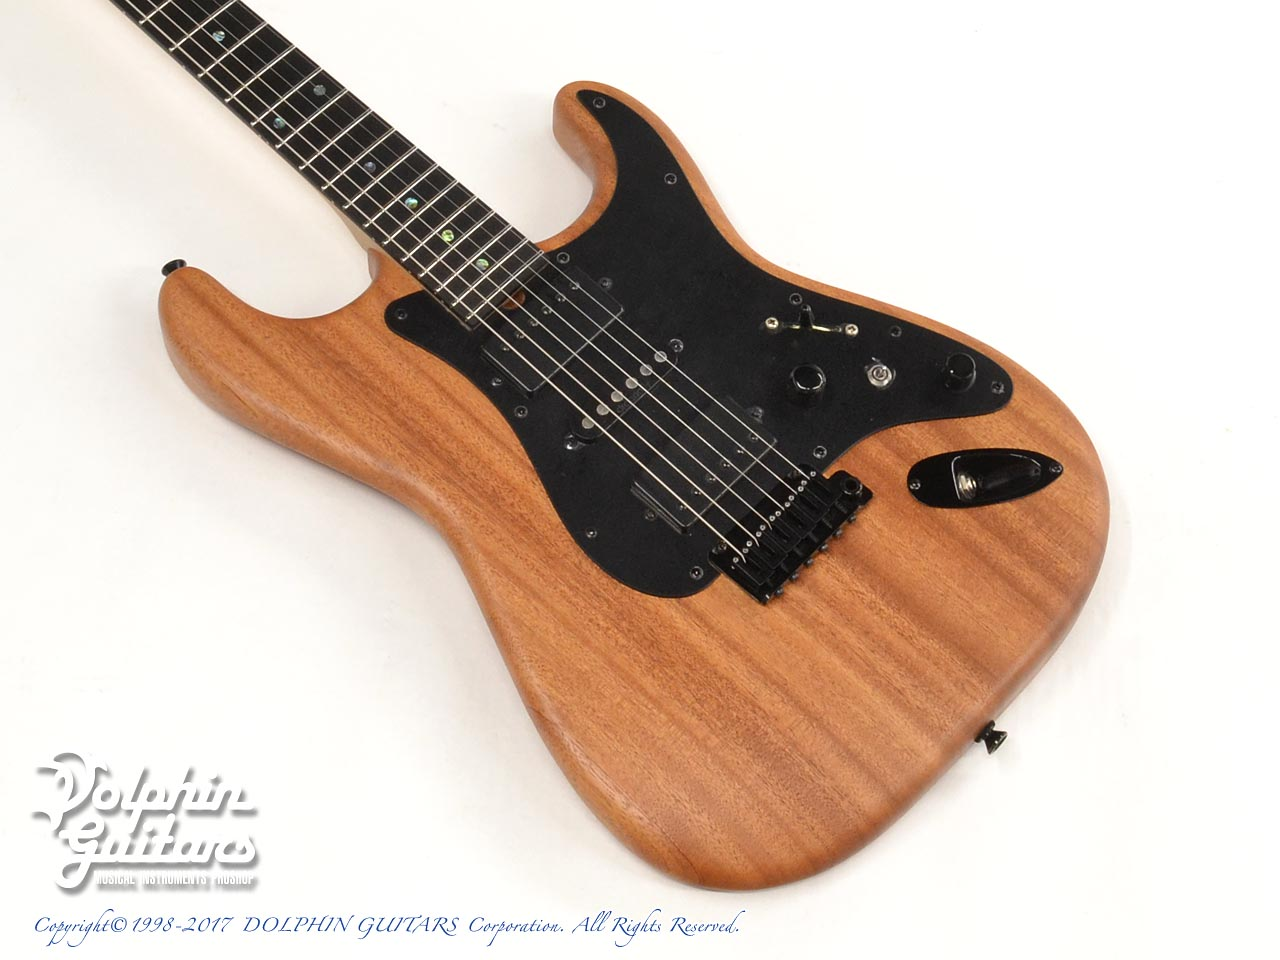 dragonfly:HI STA 22 FULL SIZE H-S-H Maple Neck (African Mahogany)